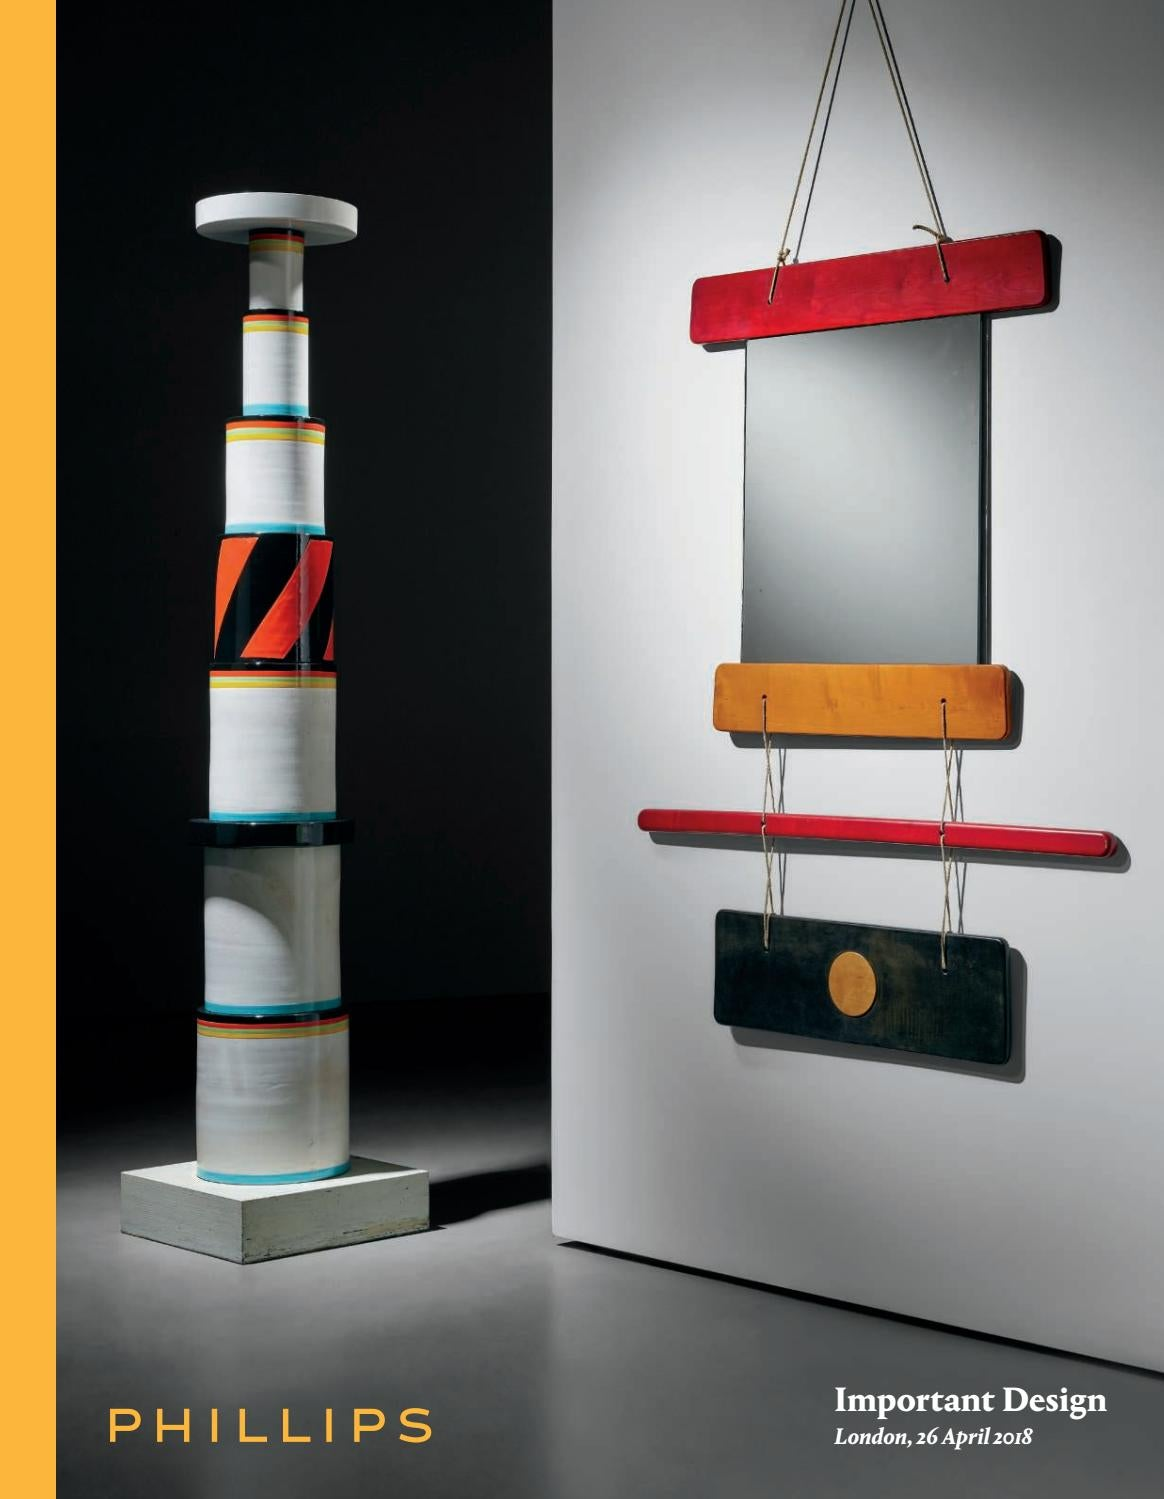 Important design catalogue by phillips issuu for Mobilia international